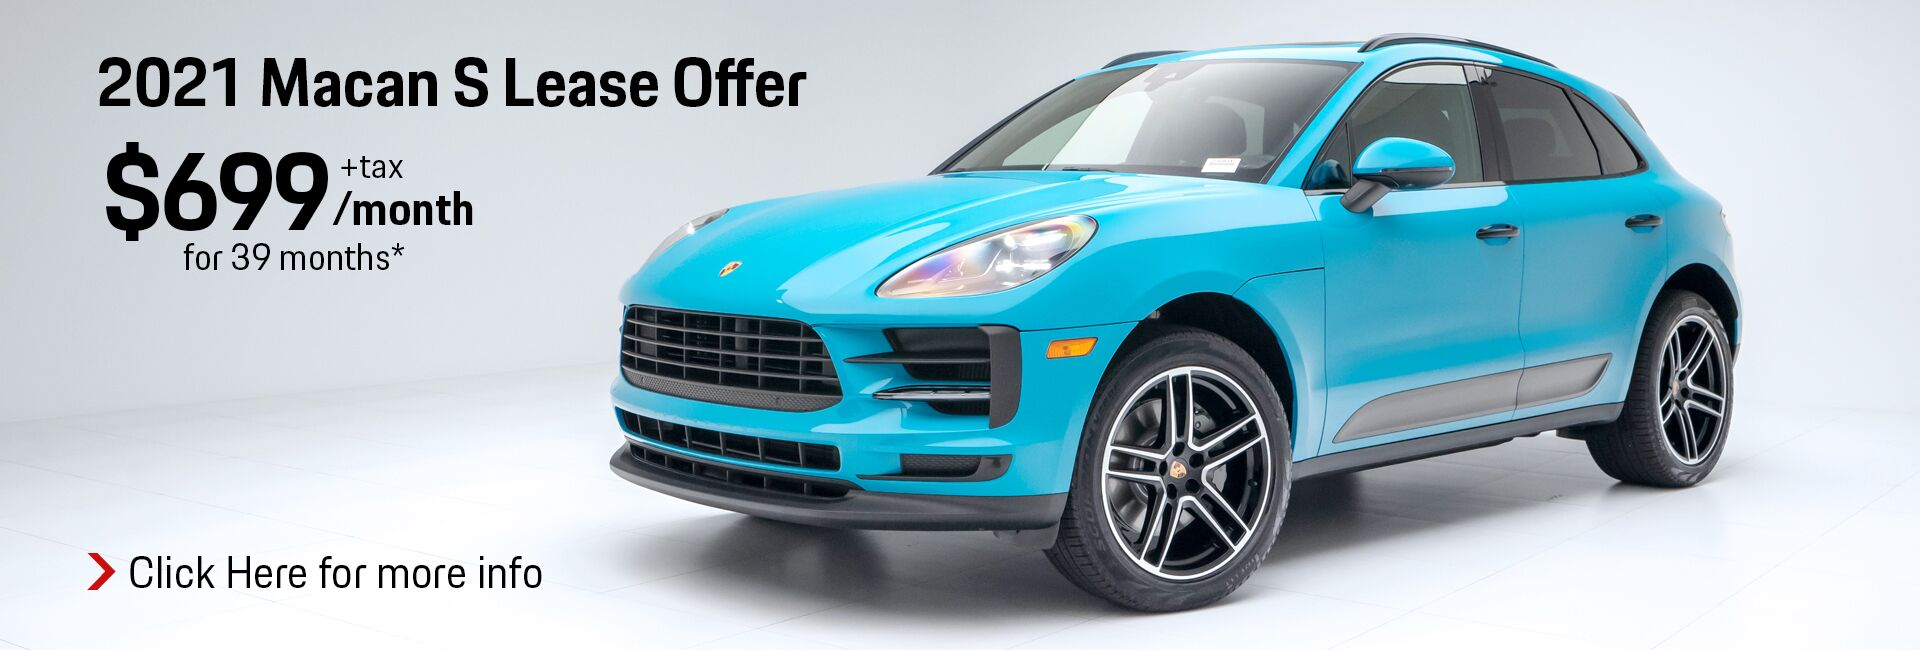 2021 Macan S Lease Offer